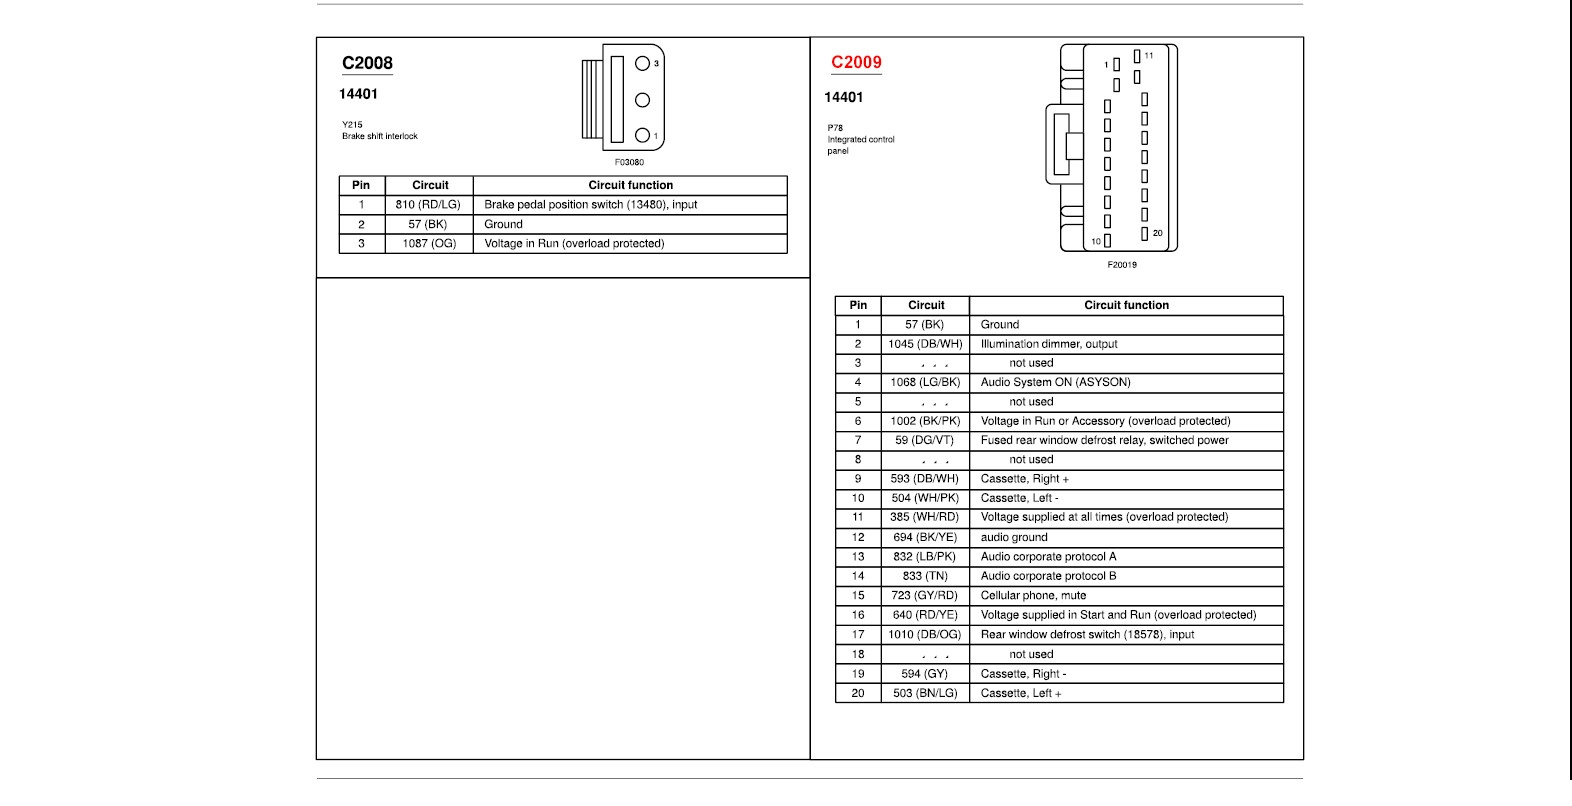 2000 mercury mountaineer radio wiring diagram 5 11 stromoeko de \u2022mercury mountaineer radio wiring diagram so schwabenschamanen de u2022 rh so schwabenschamanen de 1999 mercury mountaineer